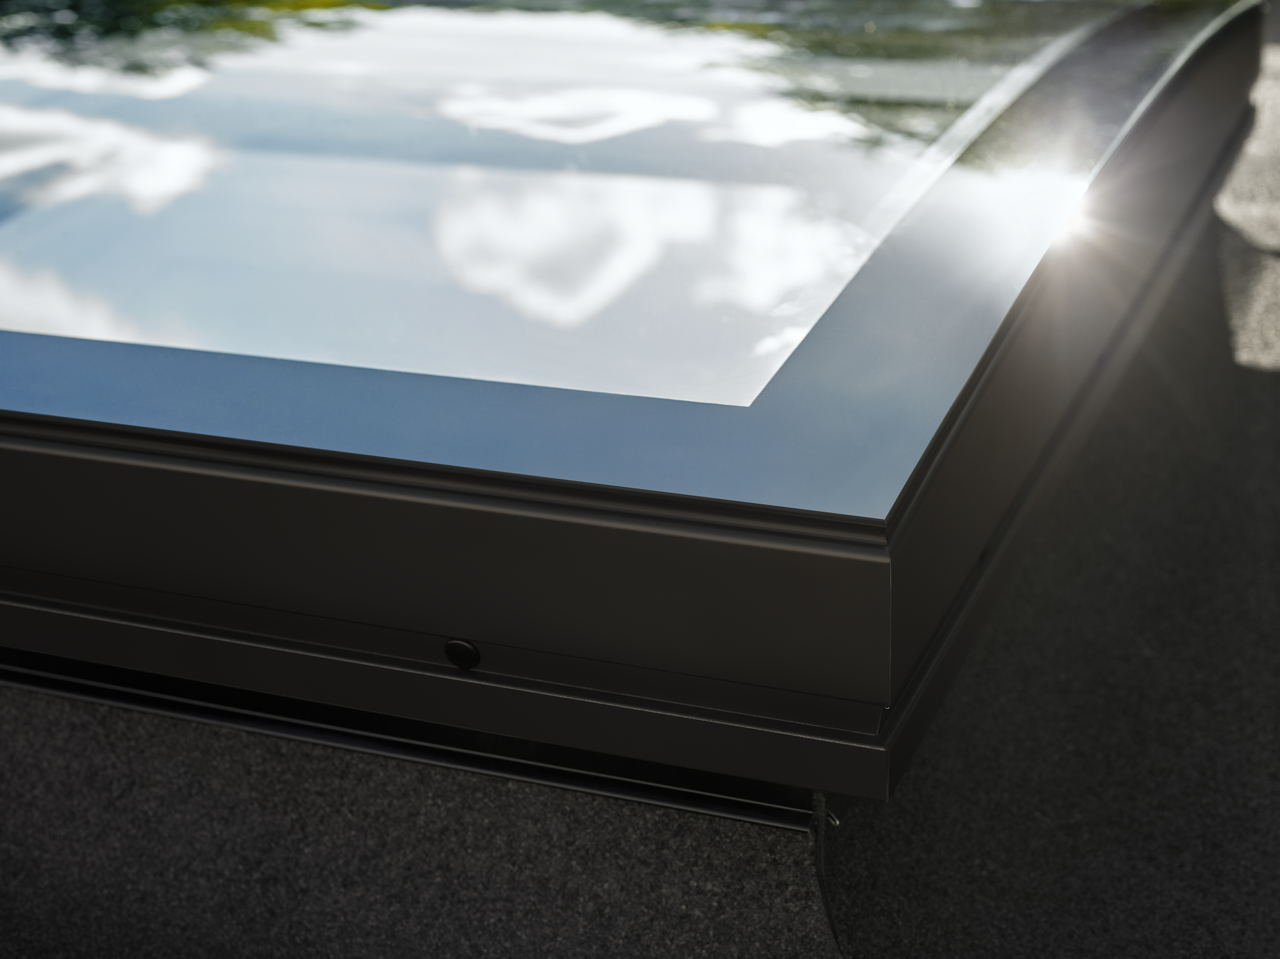 Velux curved glass rooflight let daylight shine through for Velux glass